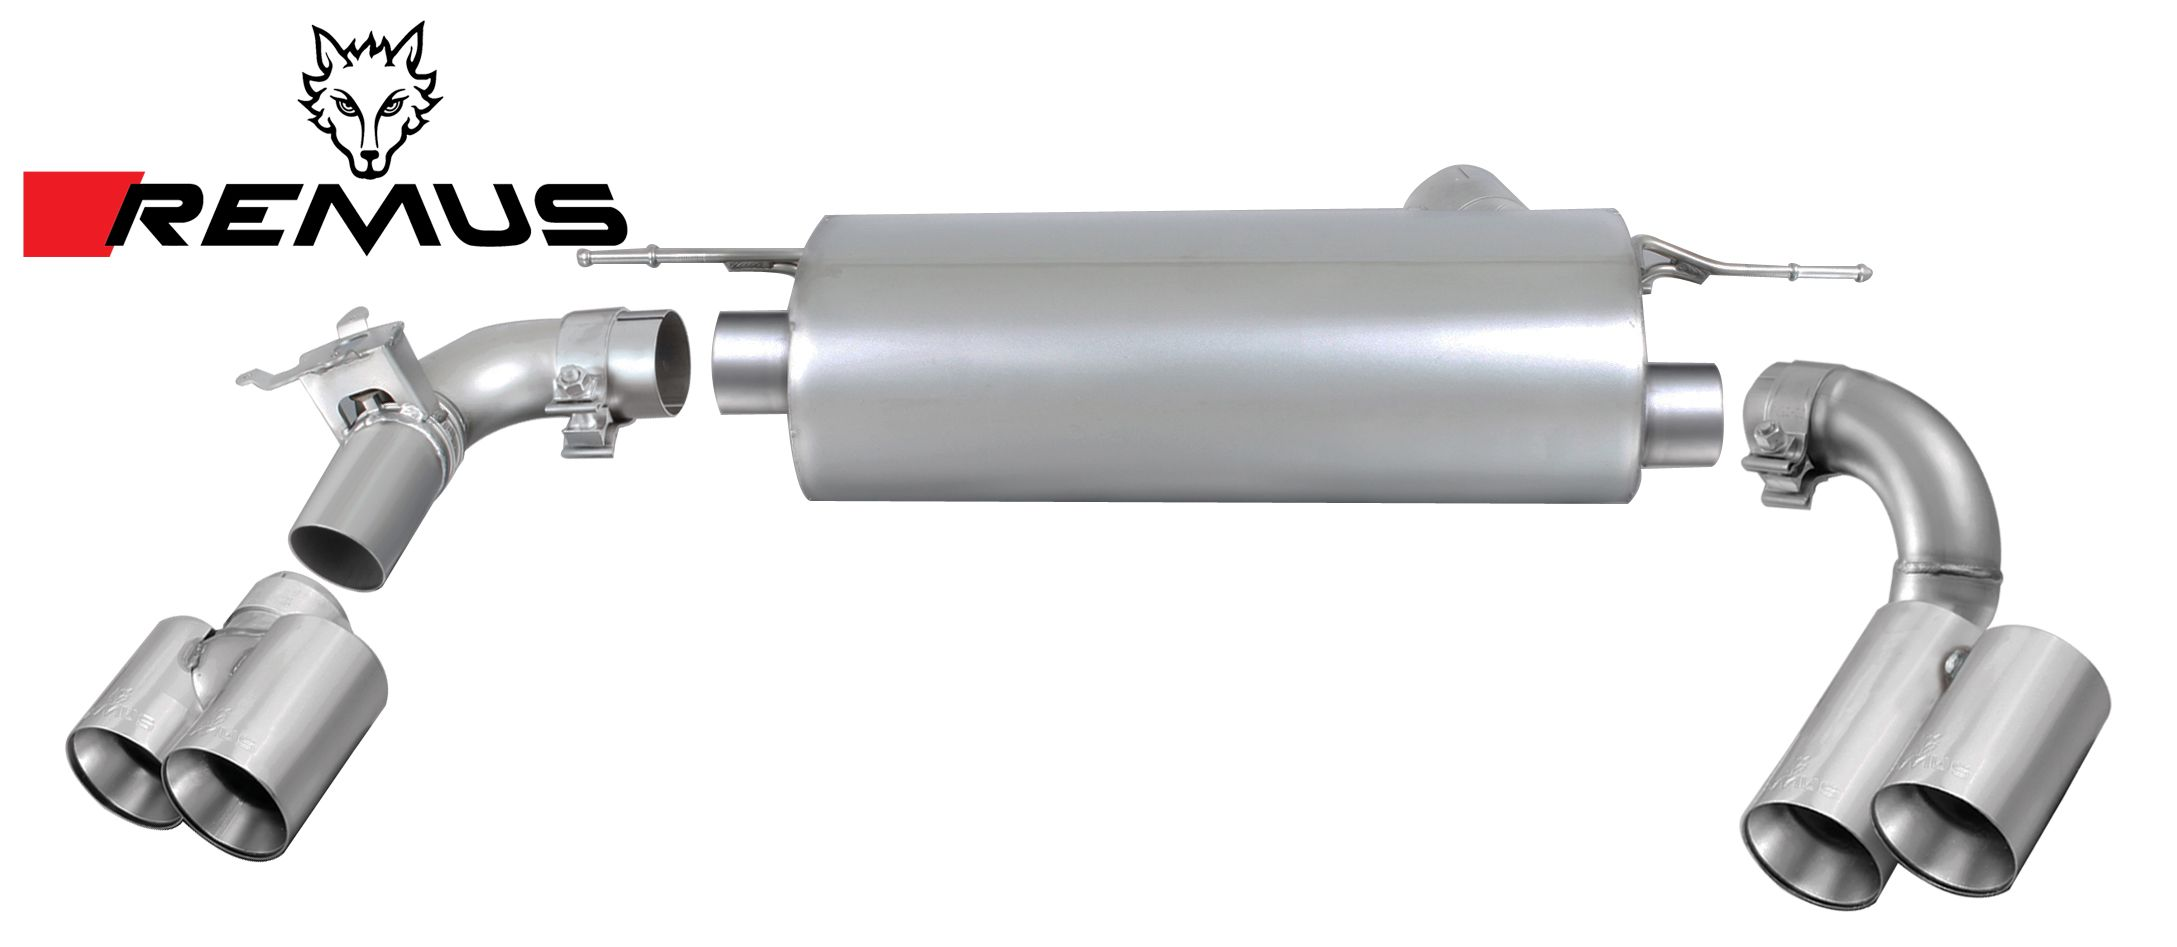 Remus Sport Exhaust System for BMW F30 LCI